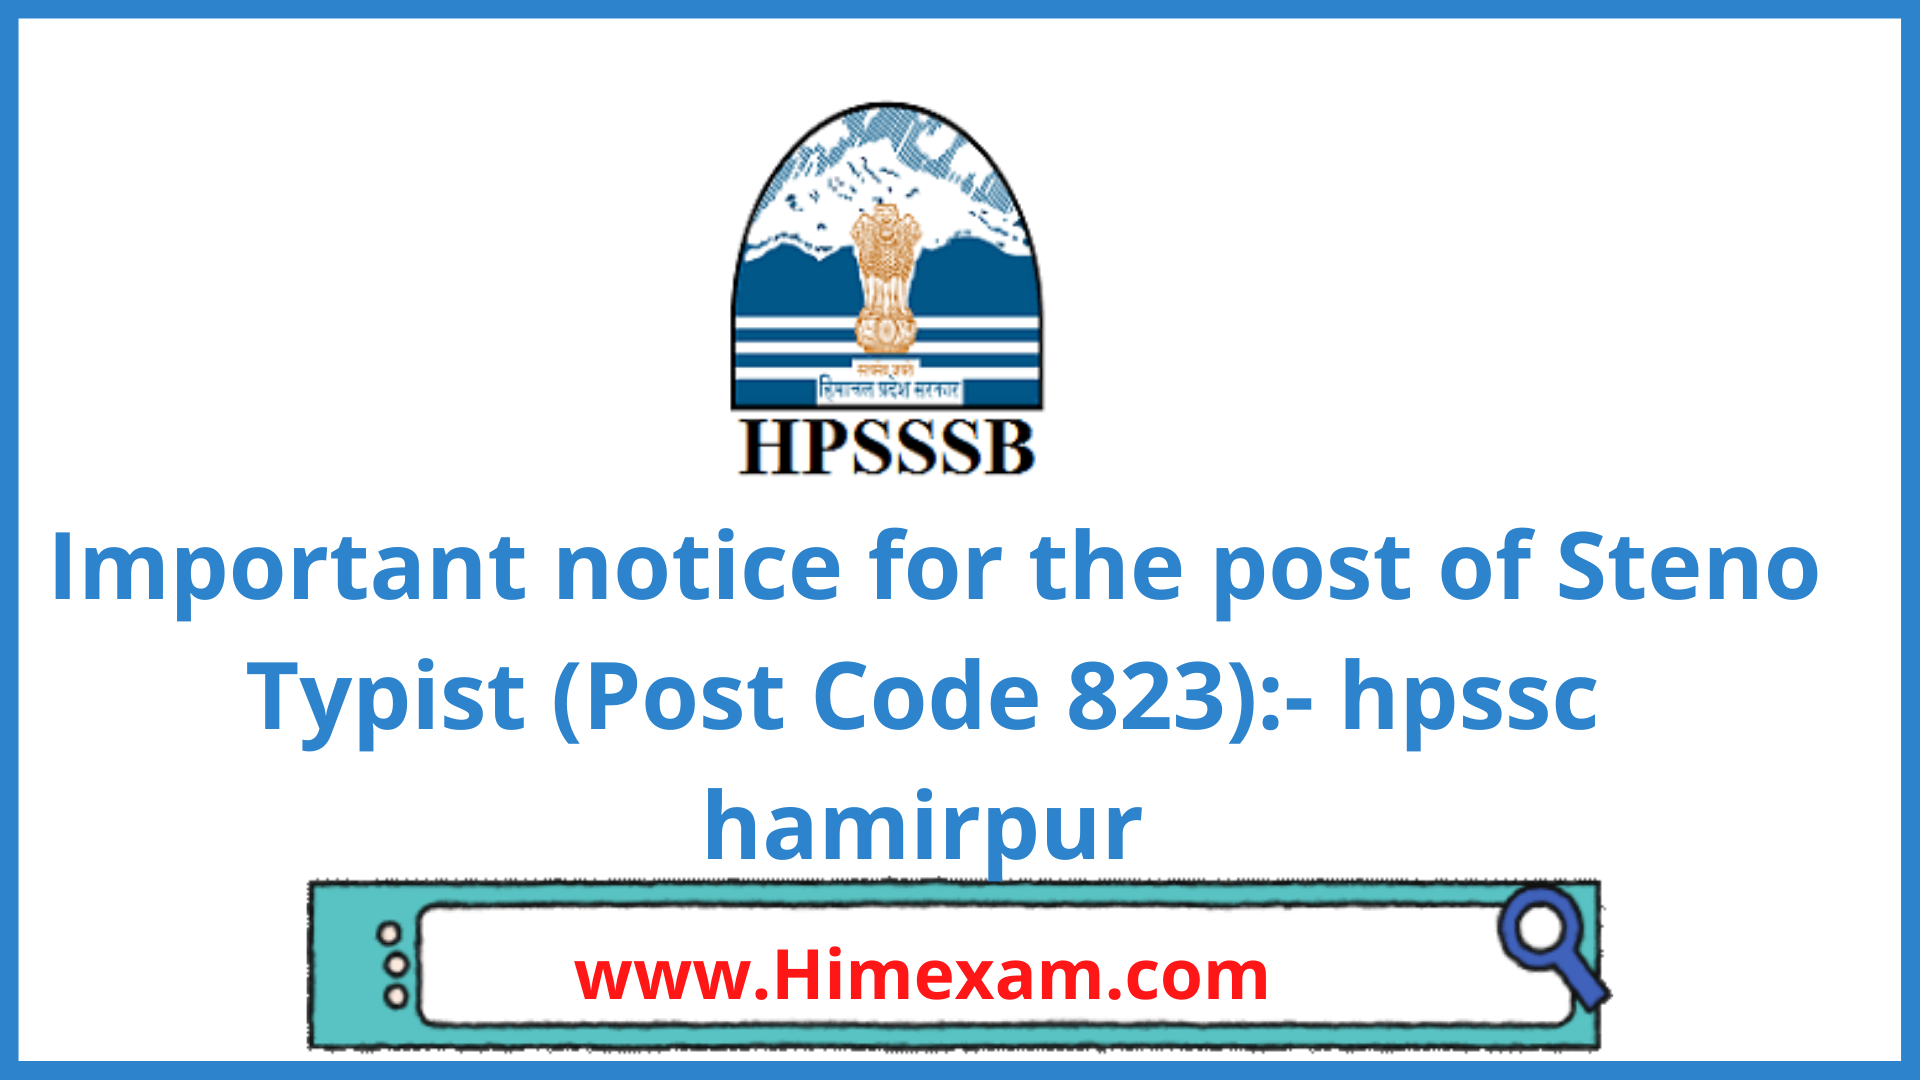 Important notice for the post of Steno Typist (Post Code 823):- hpssc hamirpur